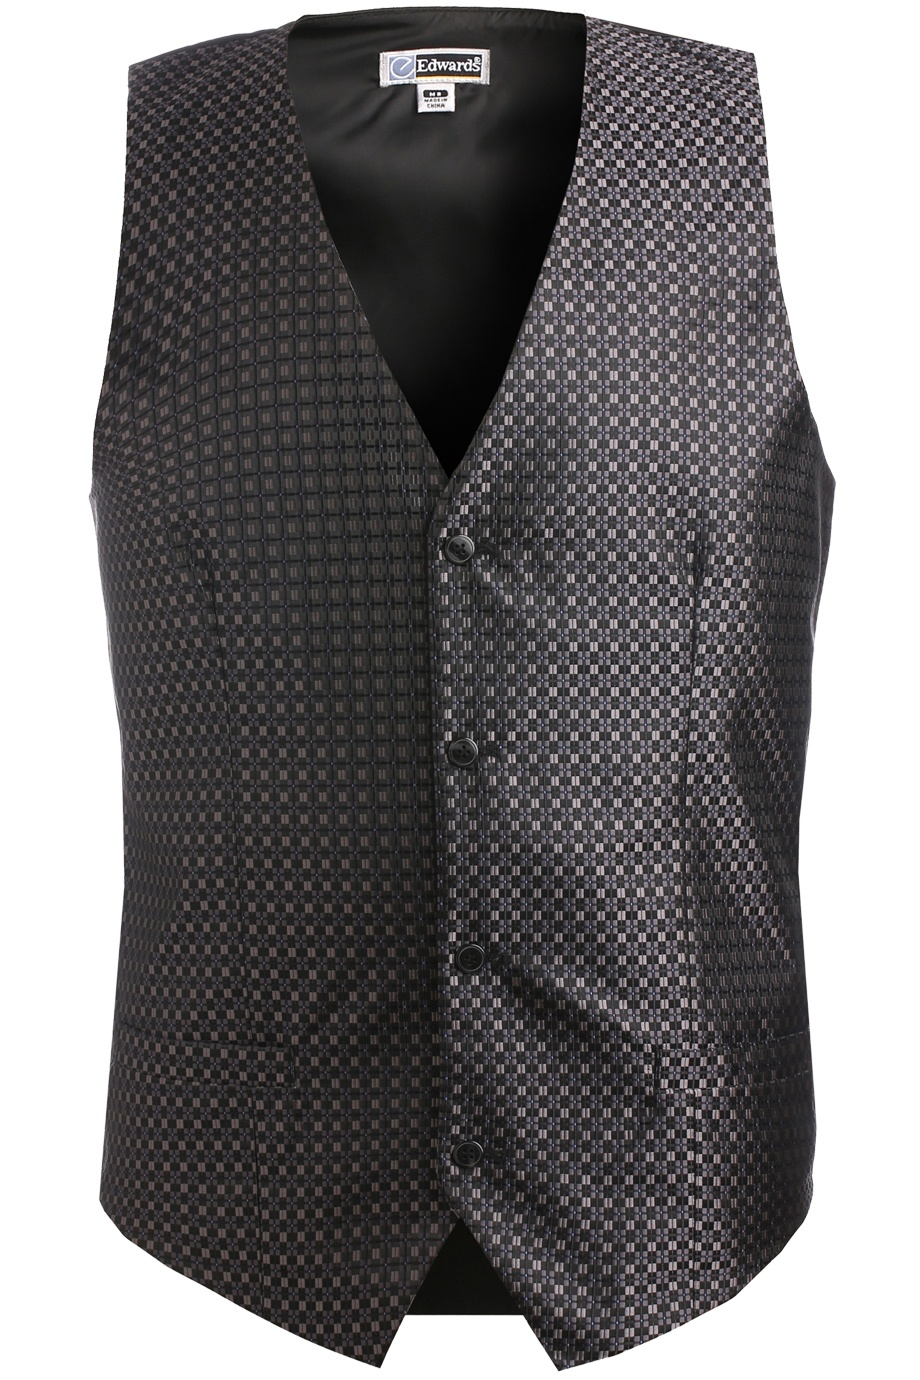 'Edwards 4396 Men's Grid Brocade Vest'